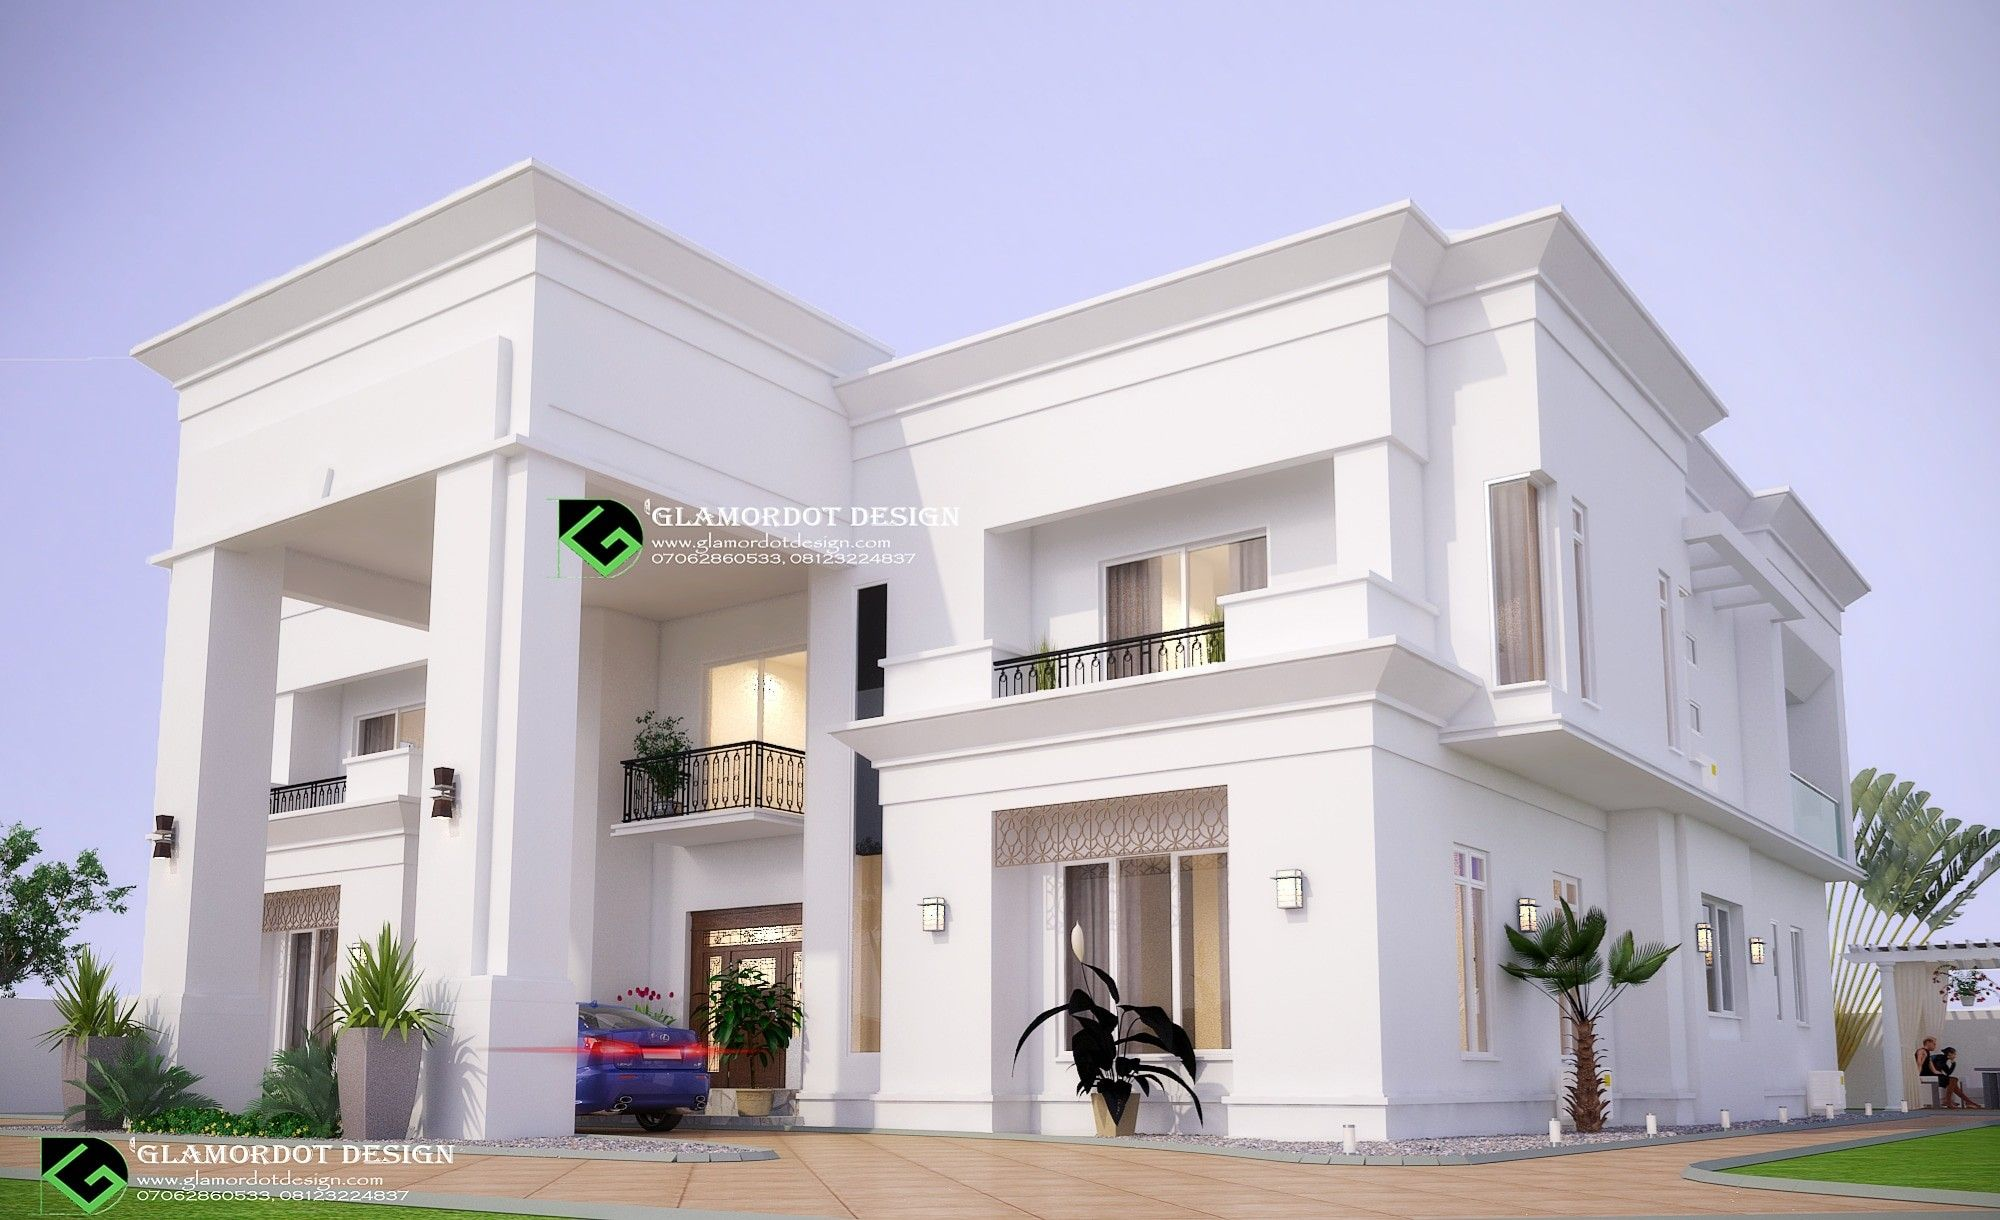 Architectural design of a proposed 5 bedroom contemporary